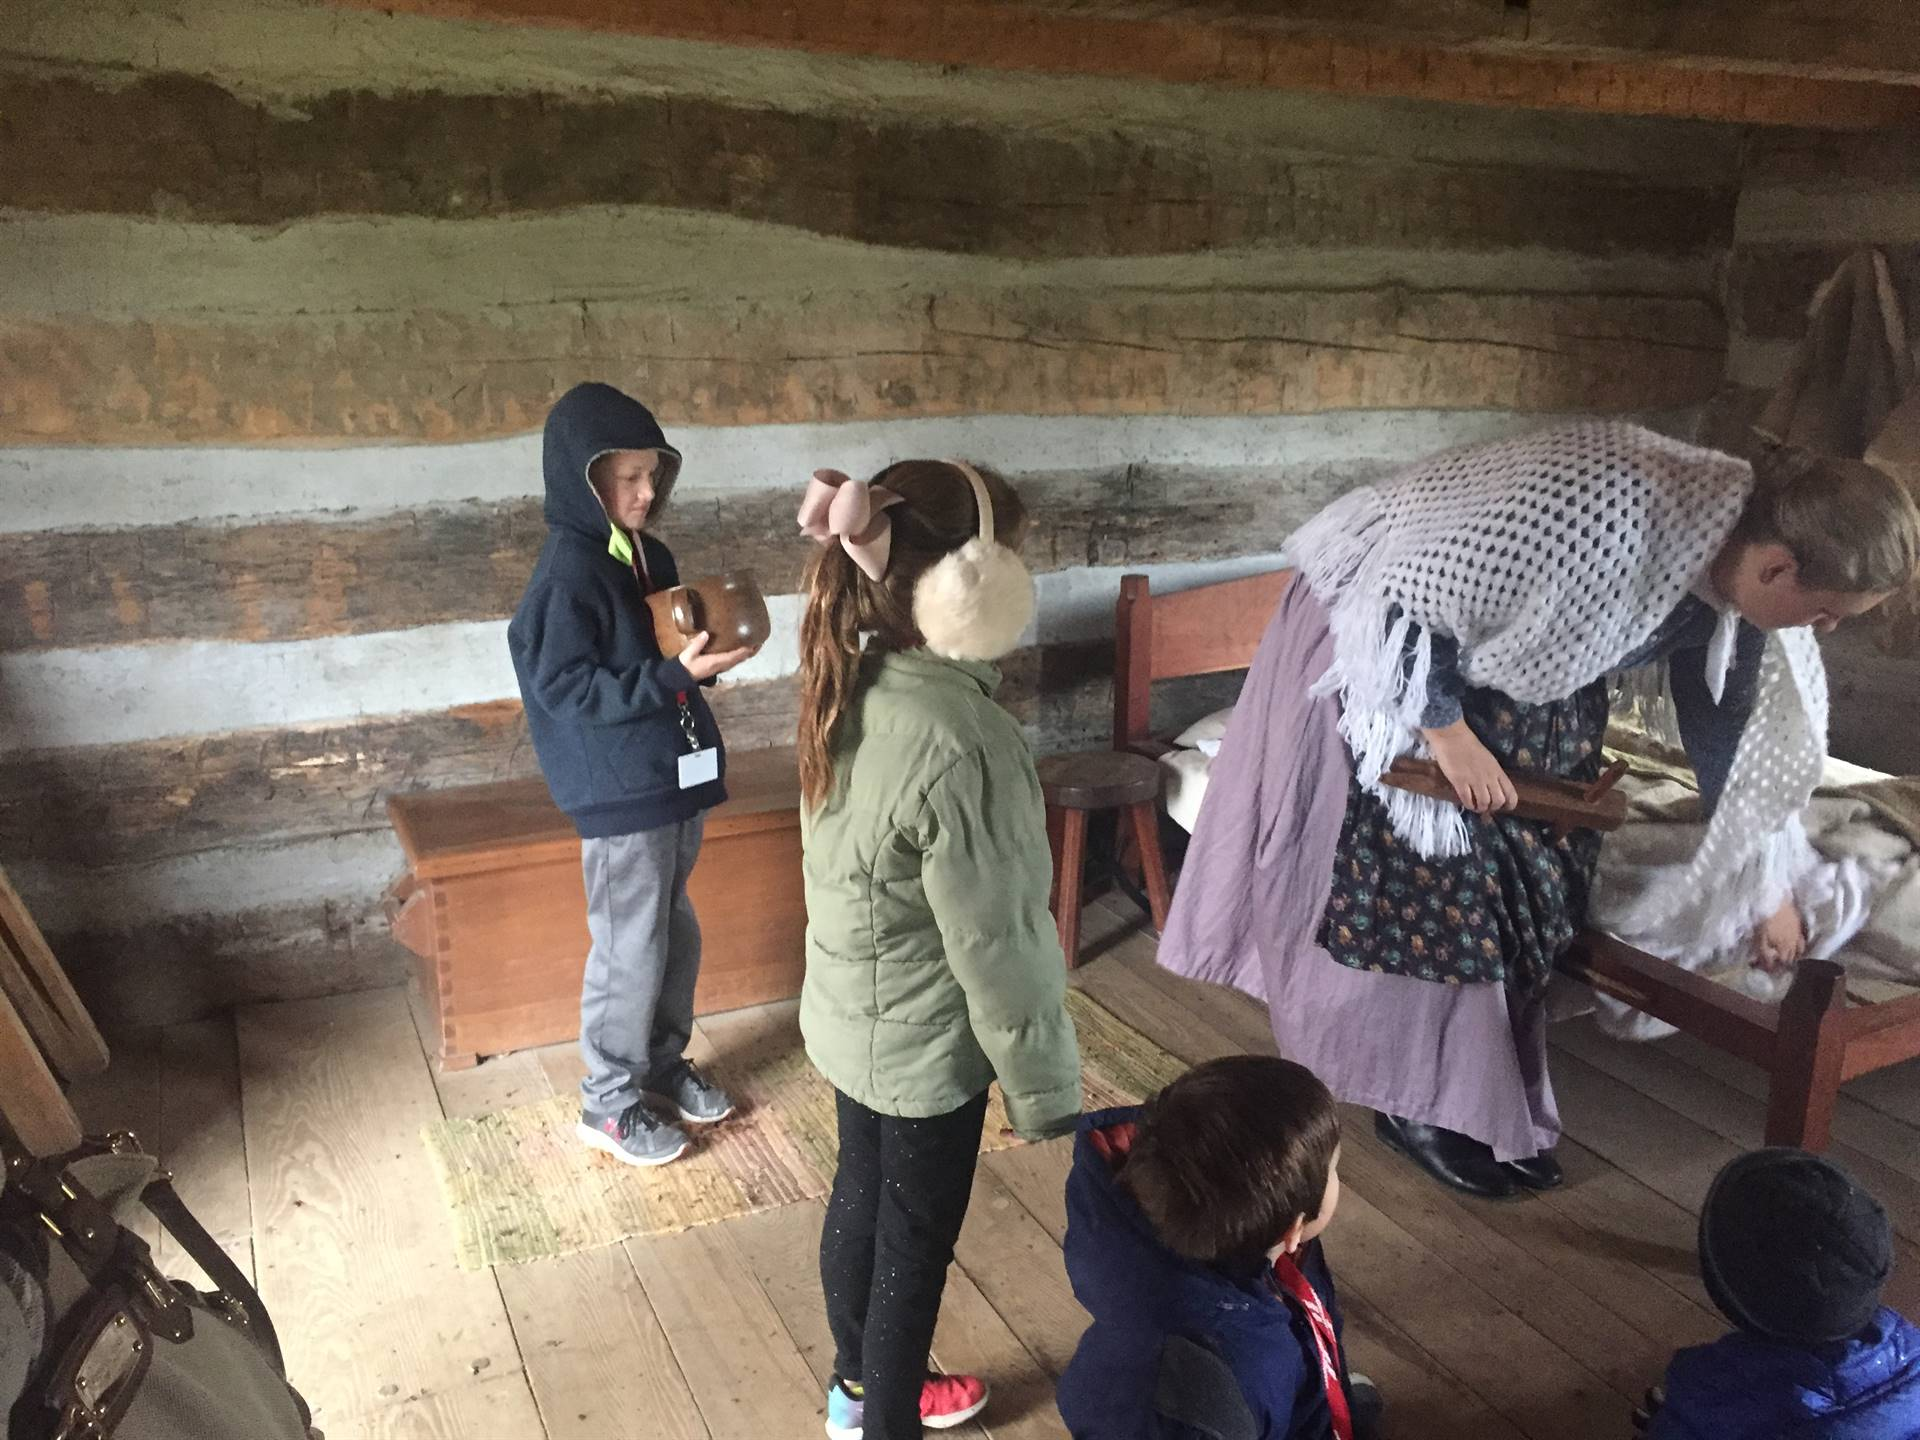 Students and guide in log cabin